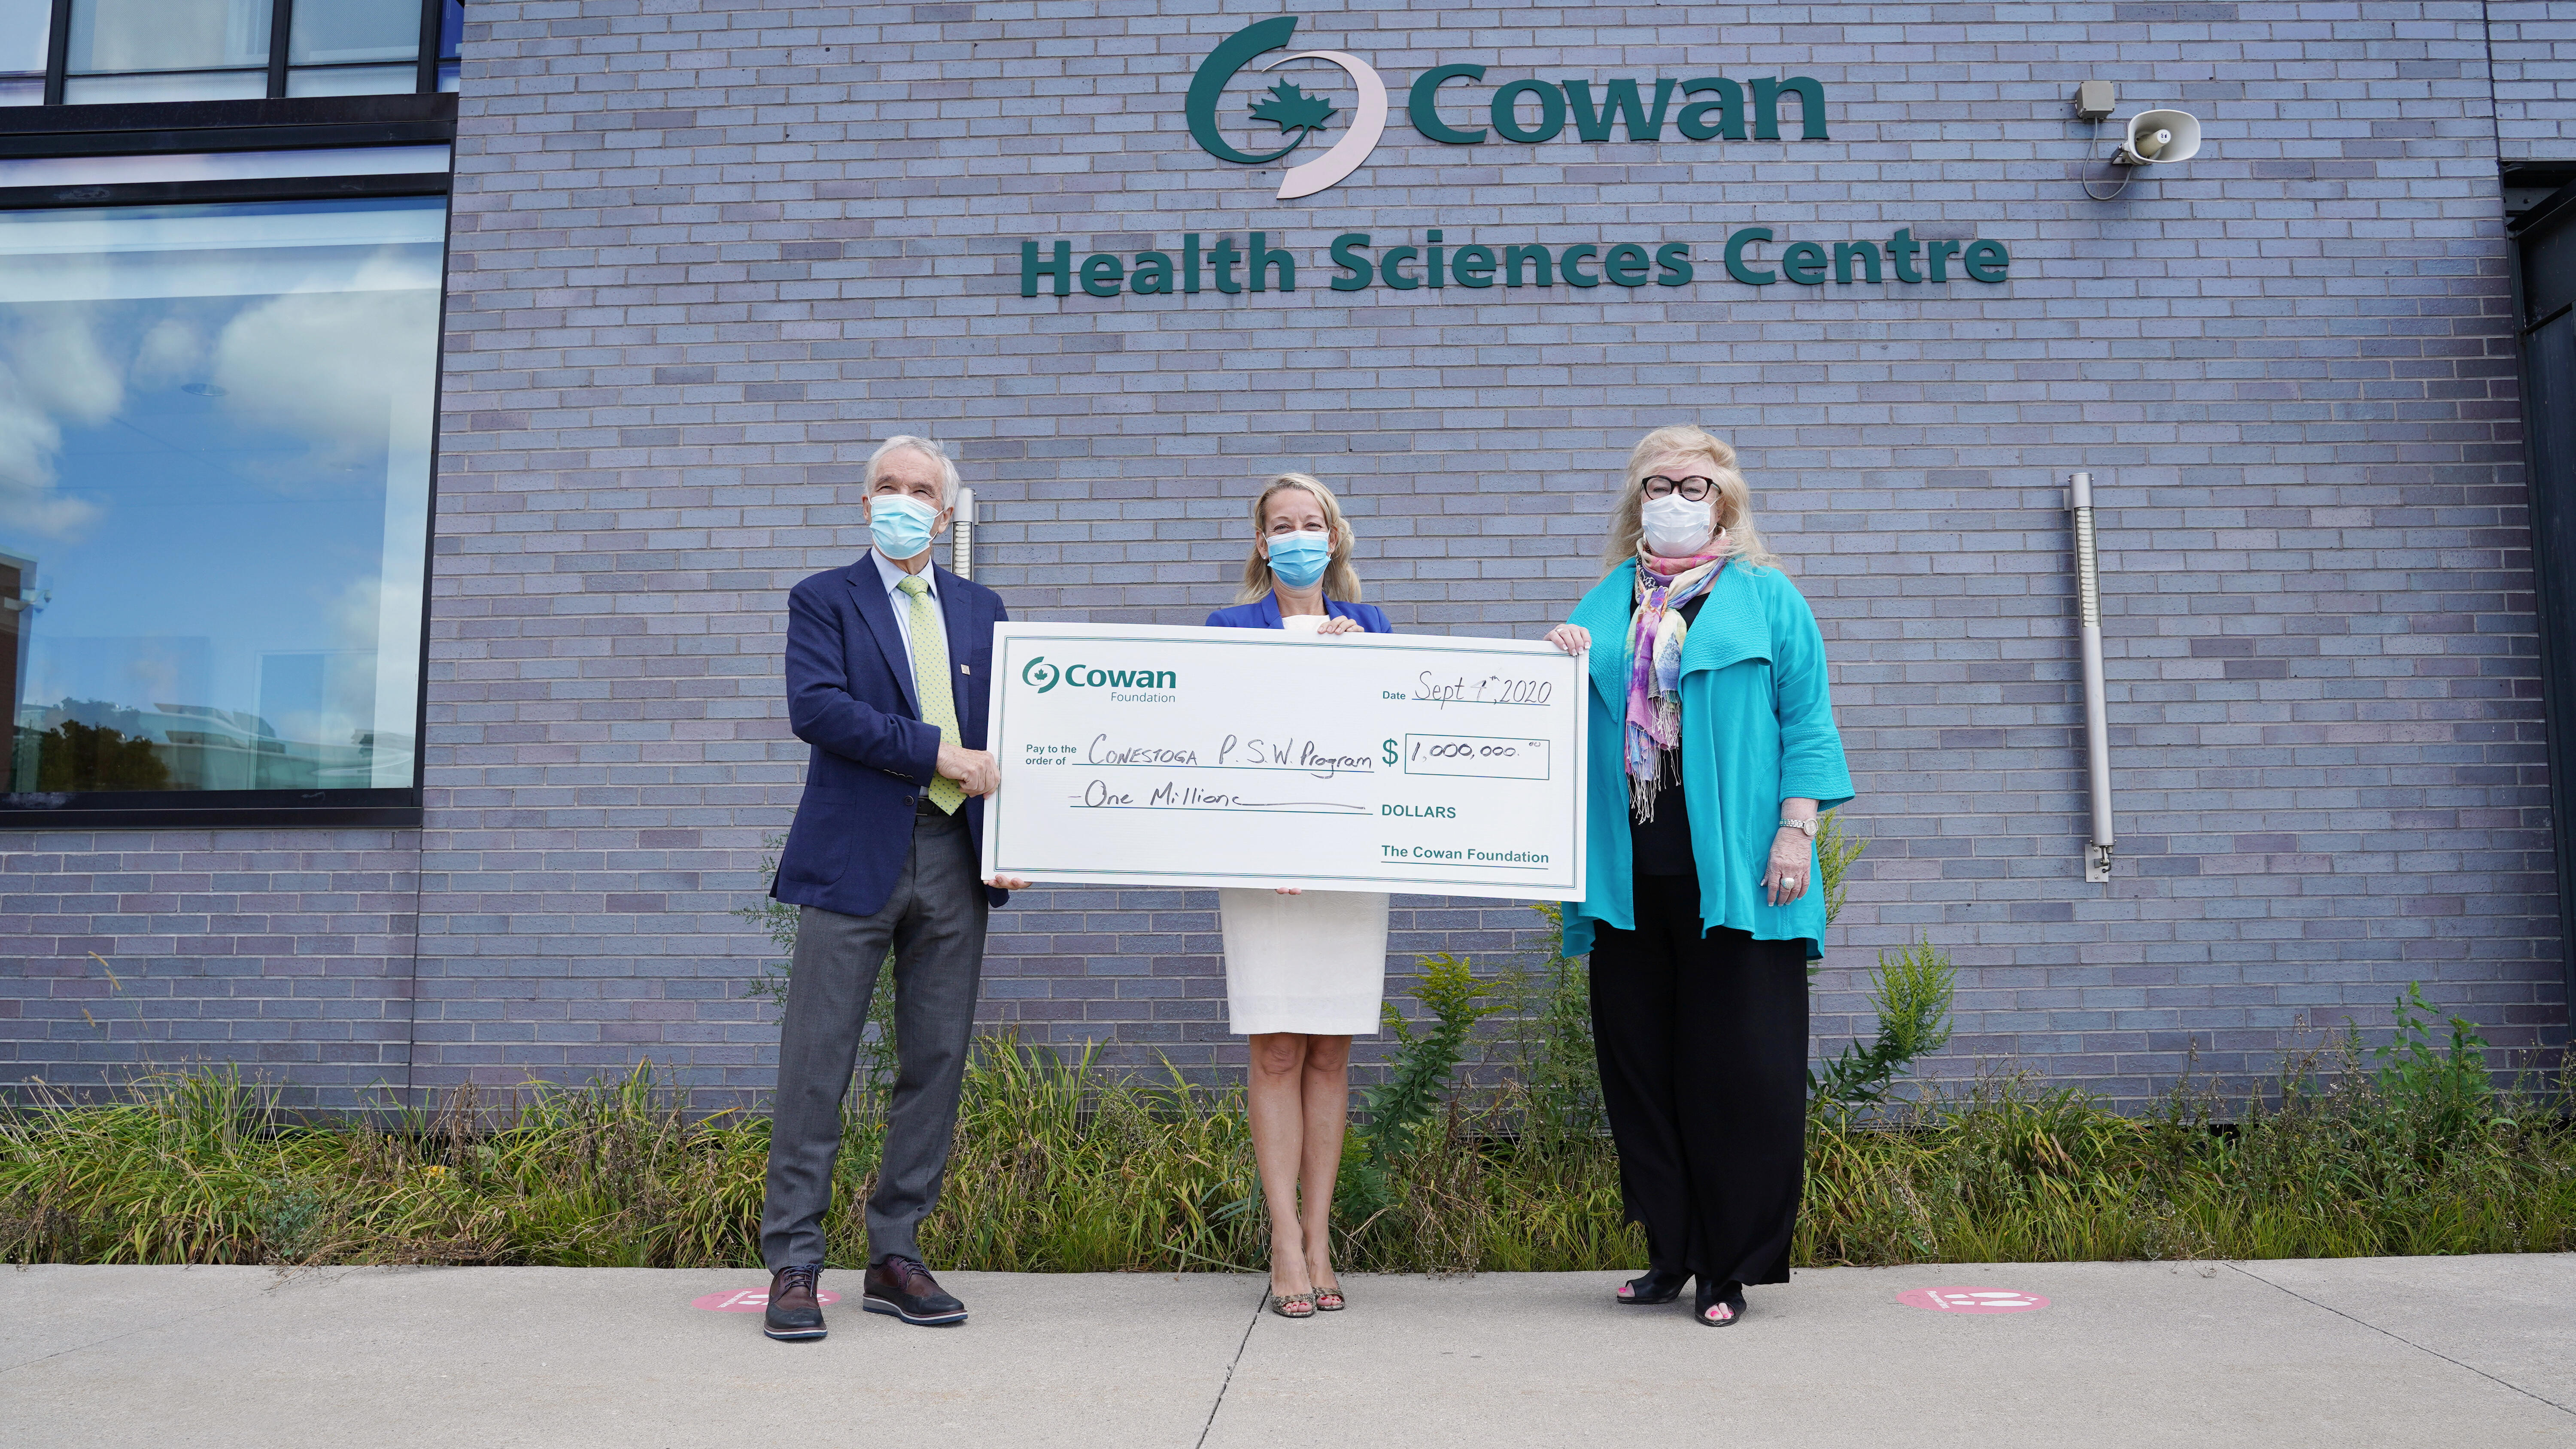 Conestoga College_The Cowan Foundation2020.jpg